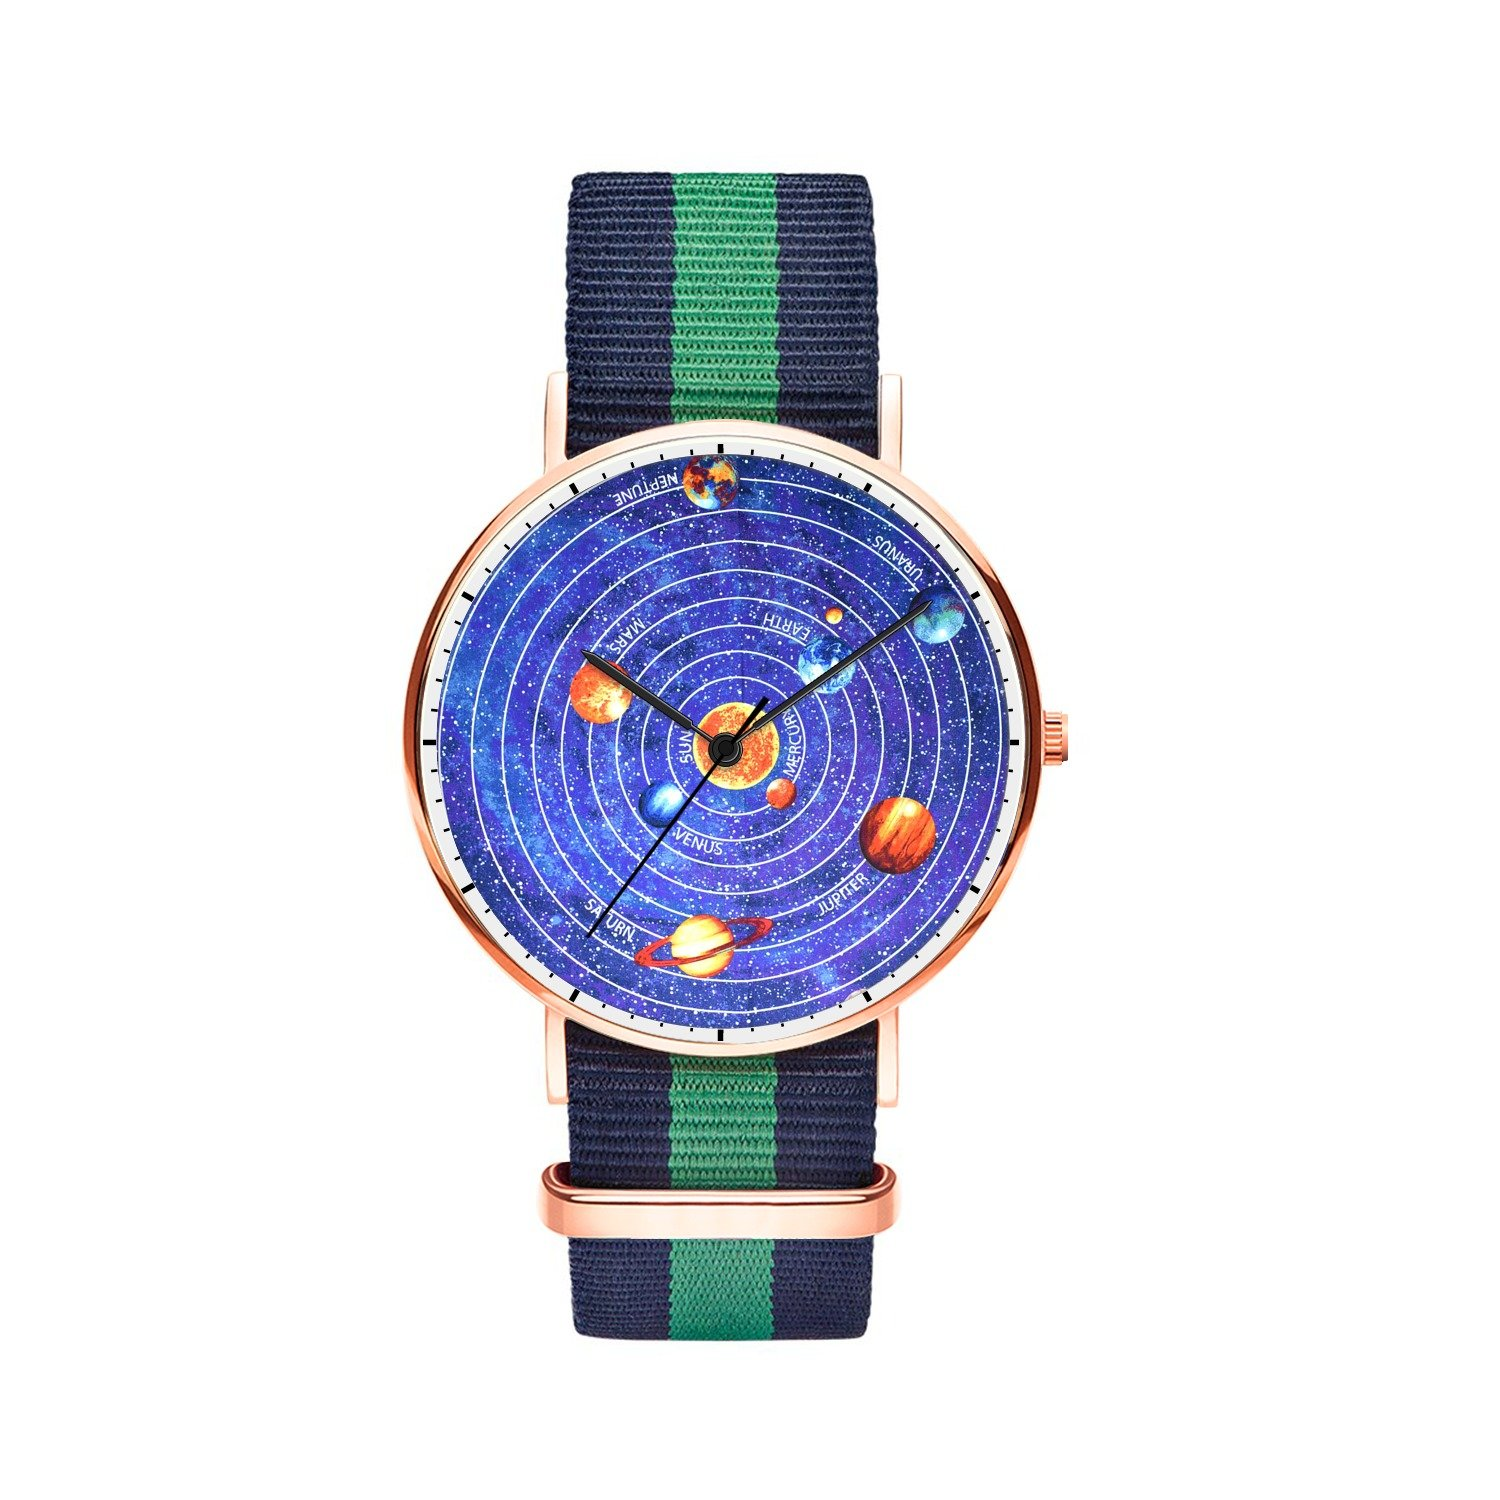 Mens watches, Boys Unique Rose Gold Wrist Watch Thin Japanese Quartz Watches With Nylon Strap Analog Waterproof and Minimalism Design for Youths, Fit all Wrist Size.- Solar System